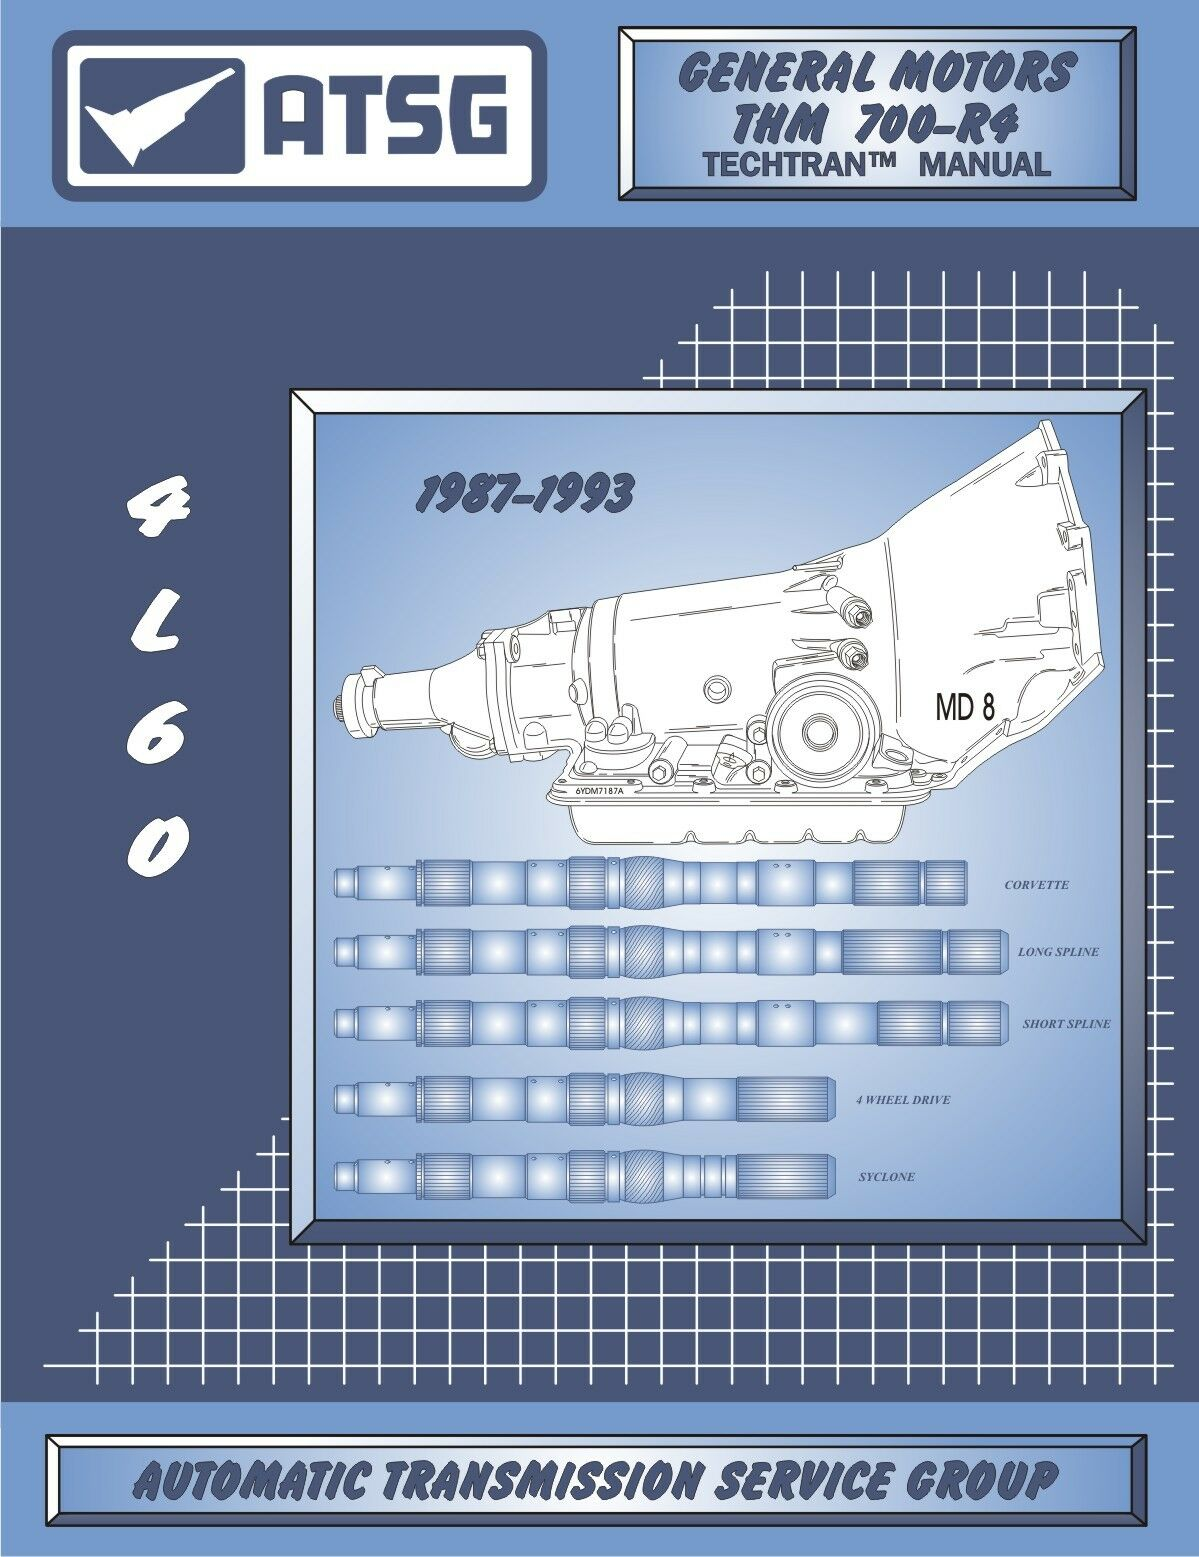 87-93 GM THM 4L60 700-R4 ATSG MANUAL Repair Rebuild Book Transmission 700R4  1 of 1Only 0 available See More